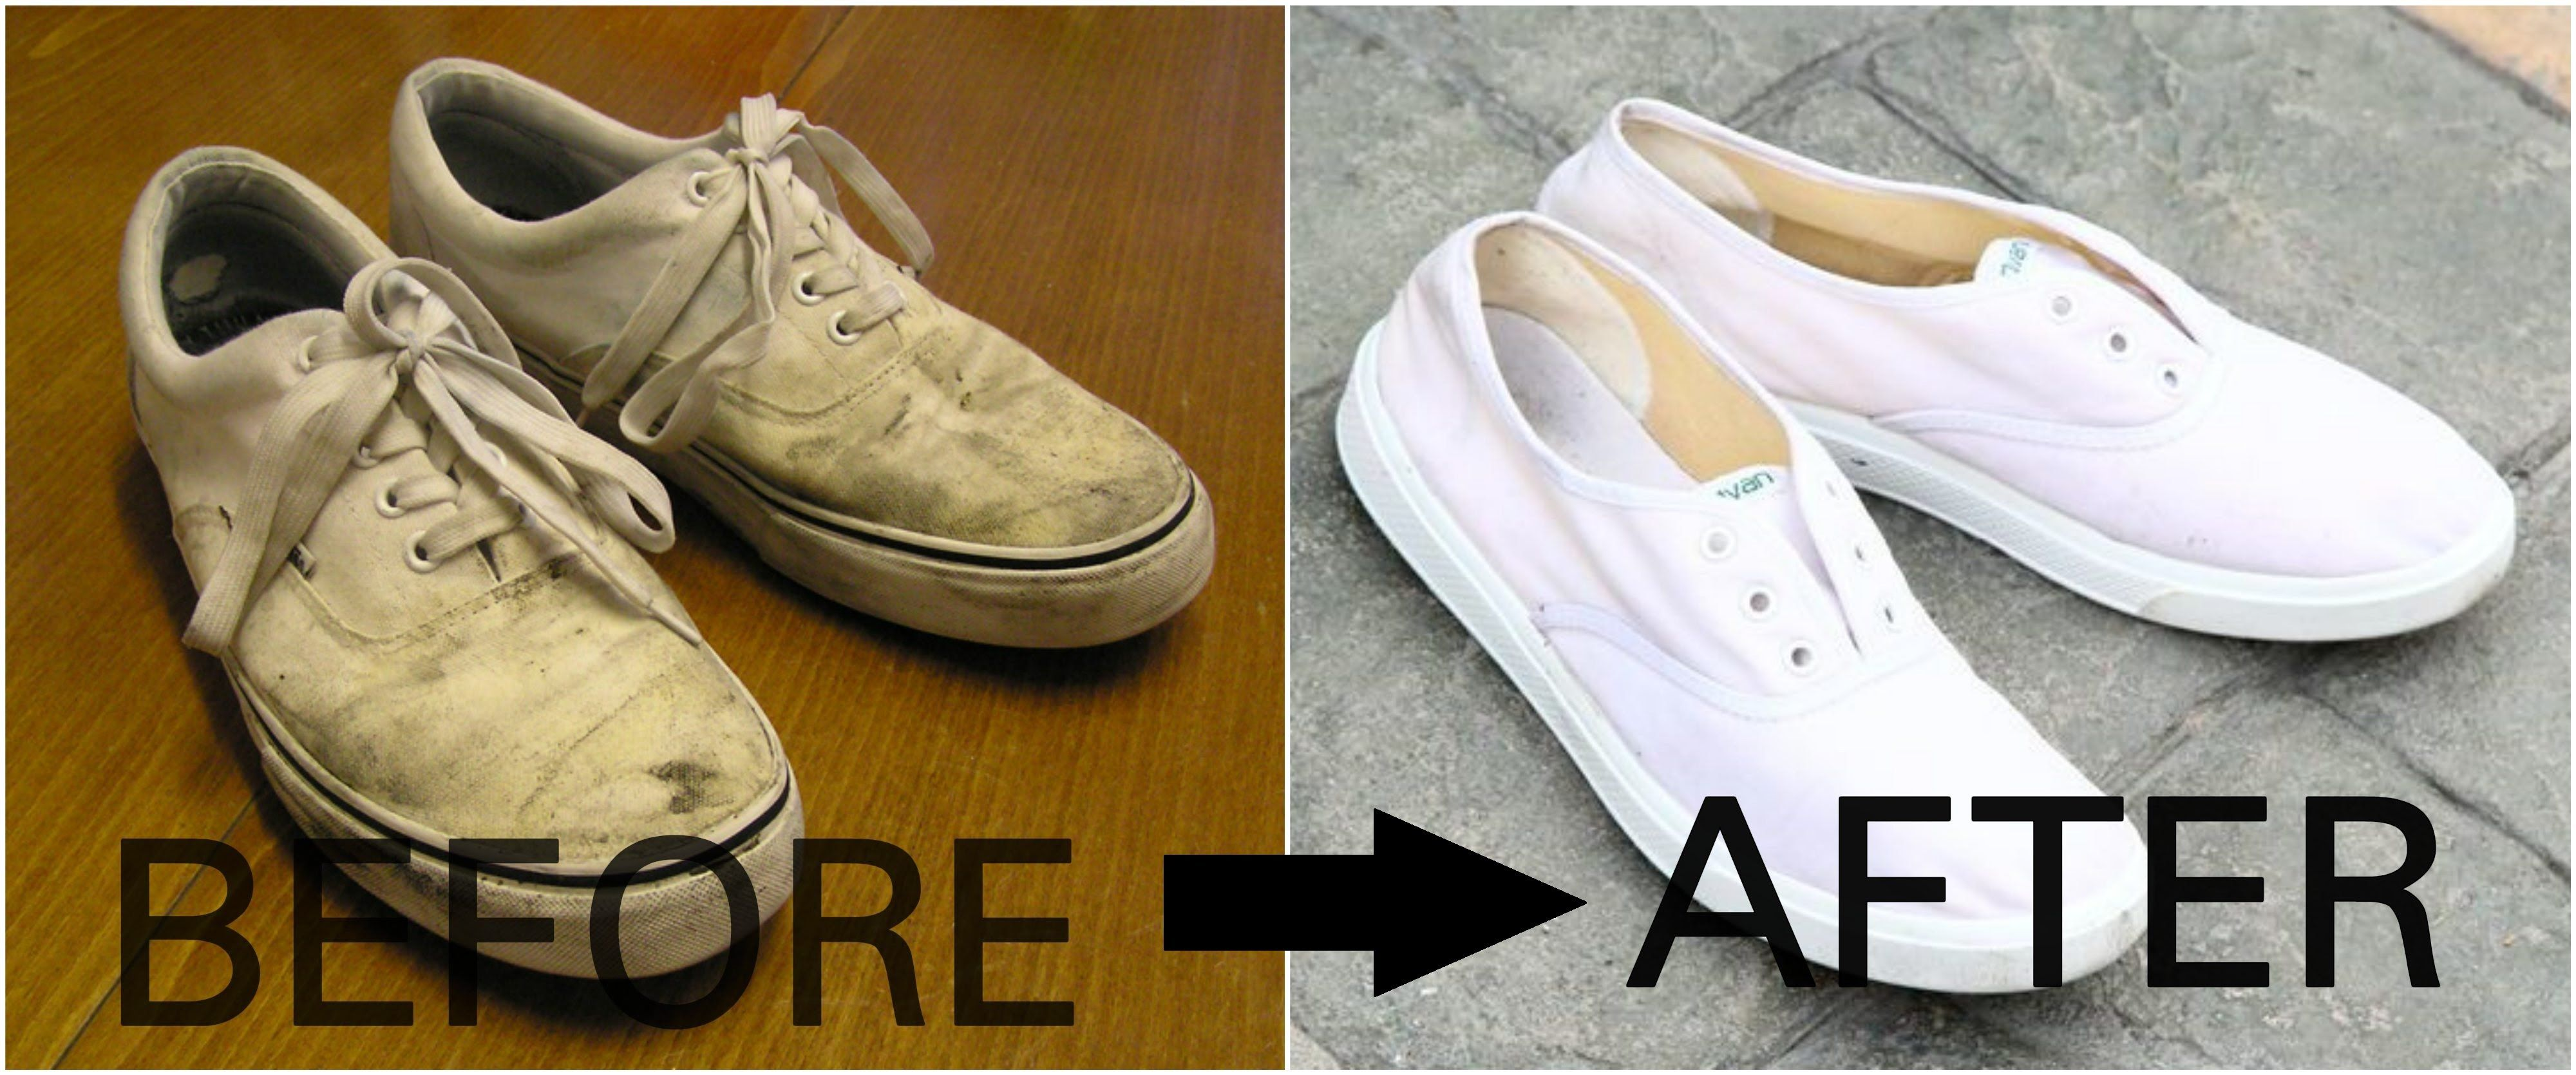 How to clean white canvas shoes with baking soda | Vans | Converse | Adi.